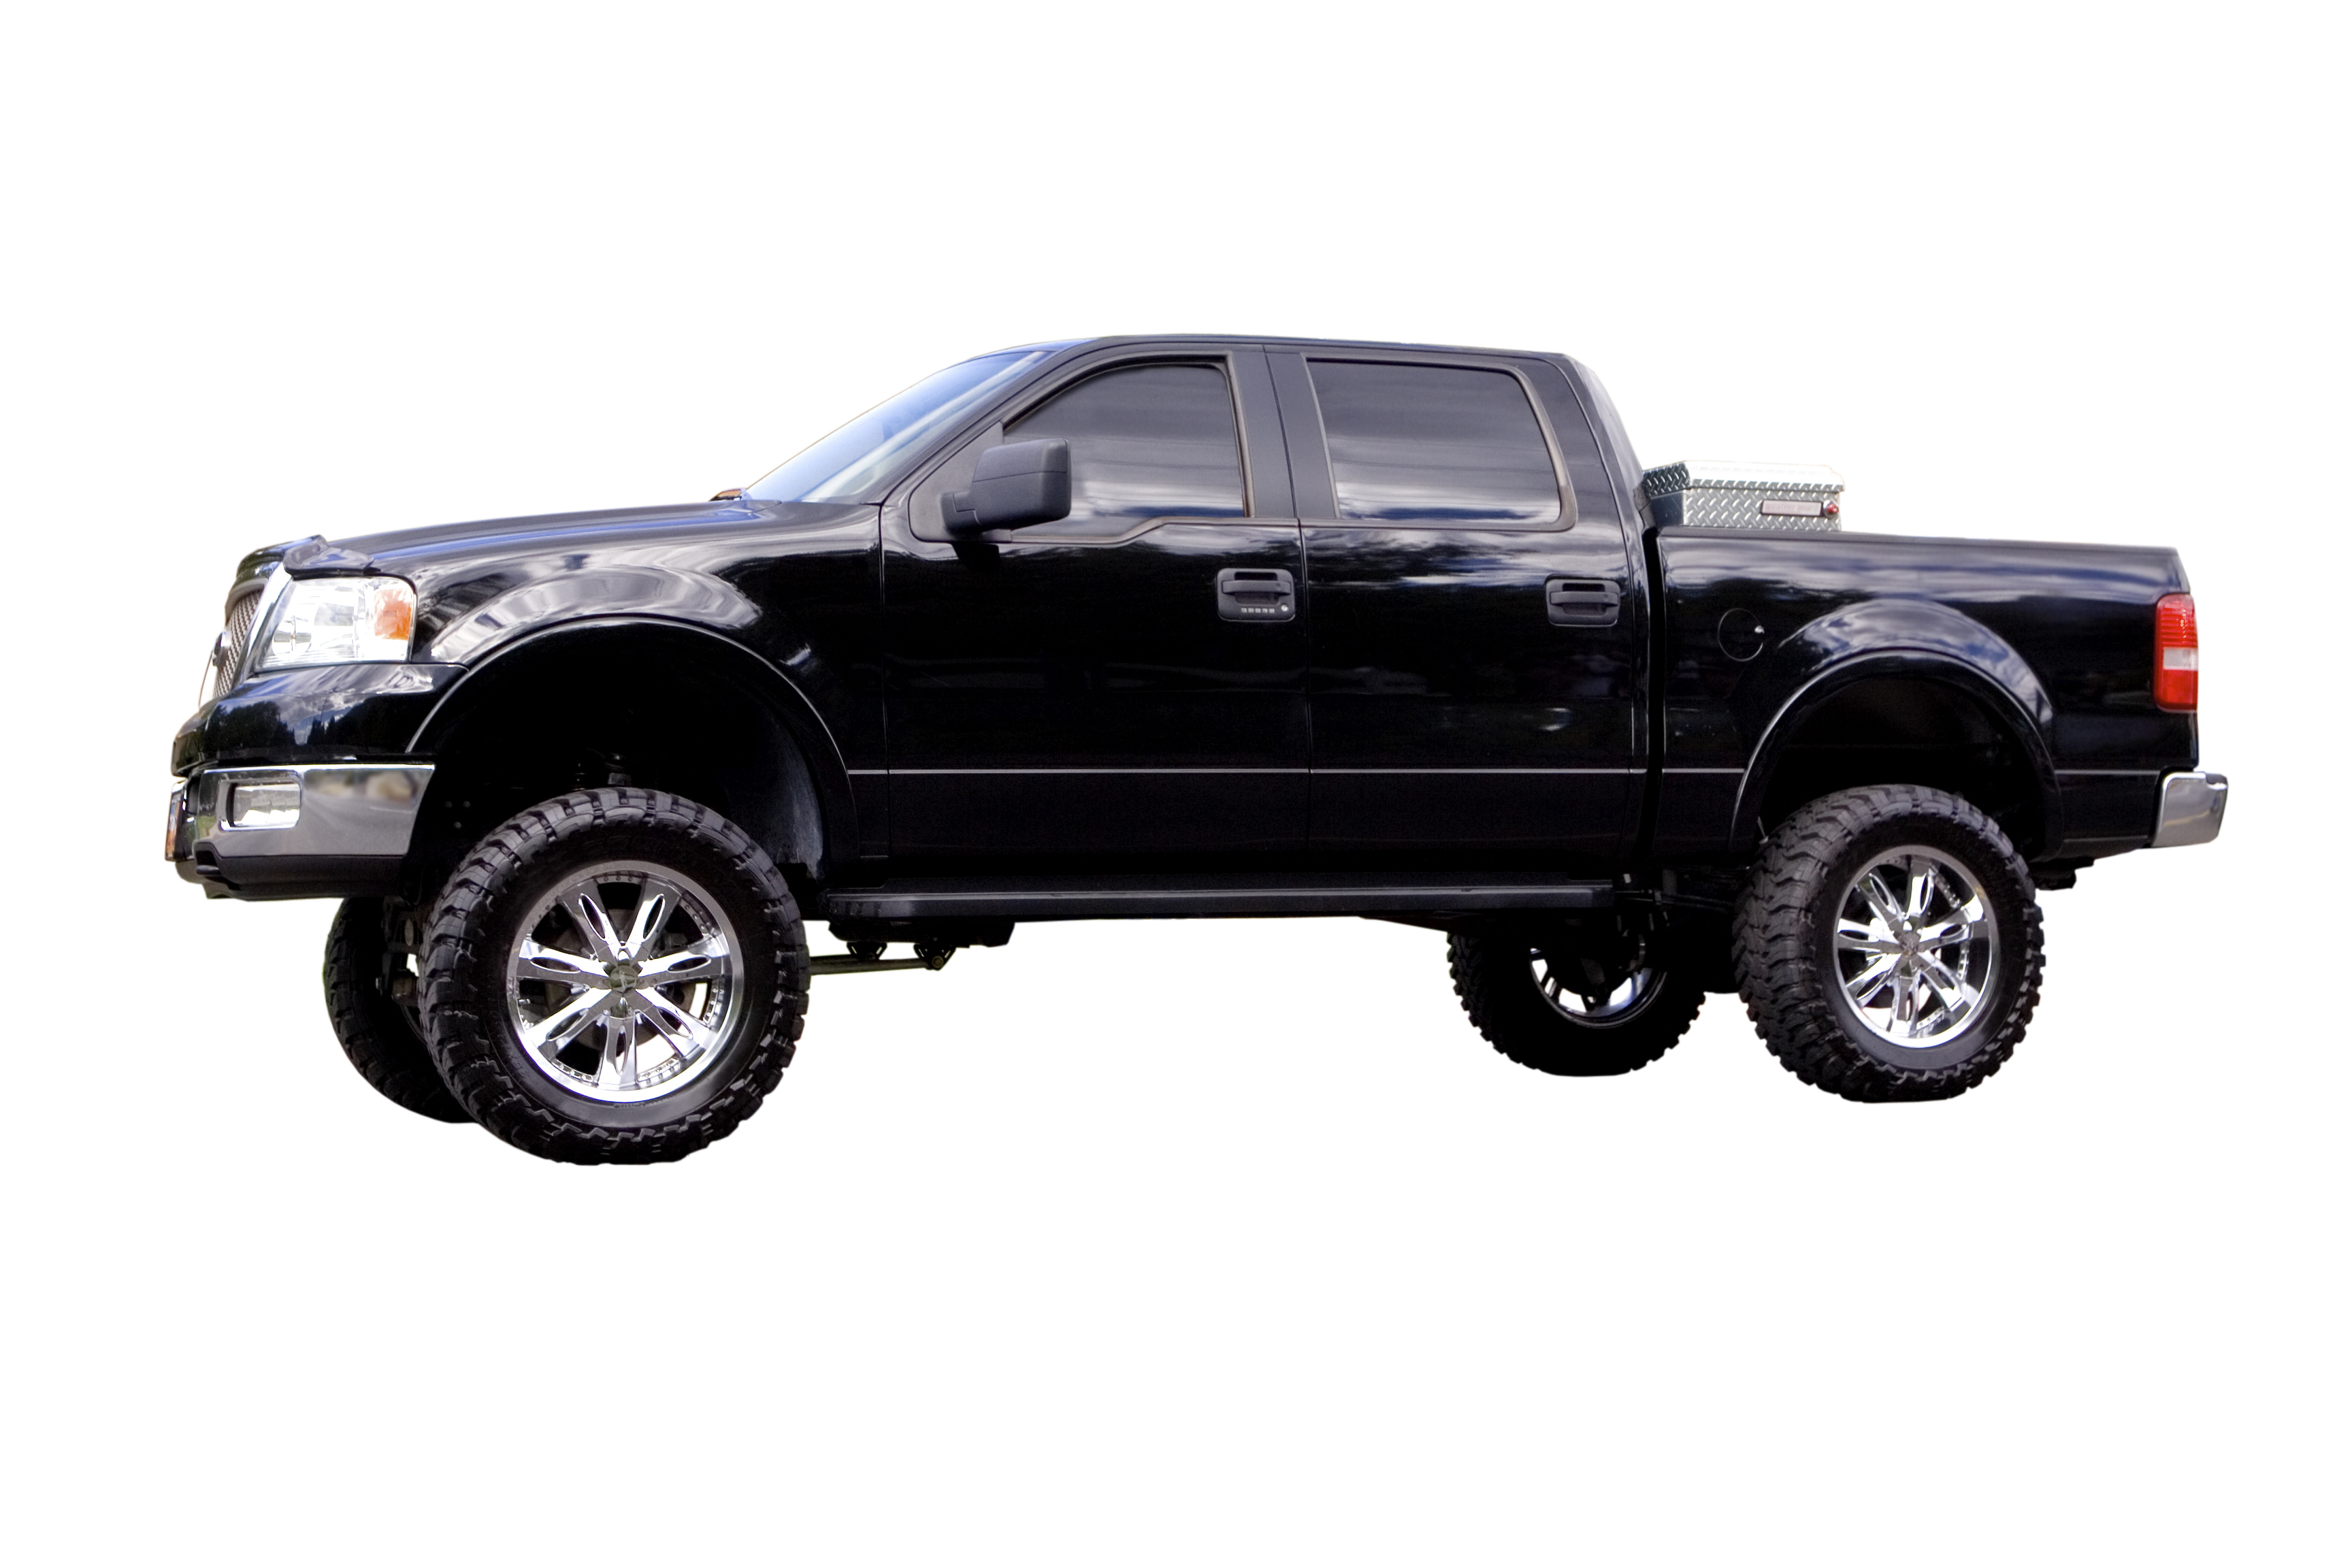 The Pros and Cons of Having a Lift Kit